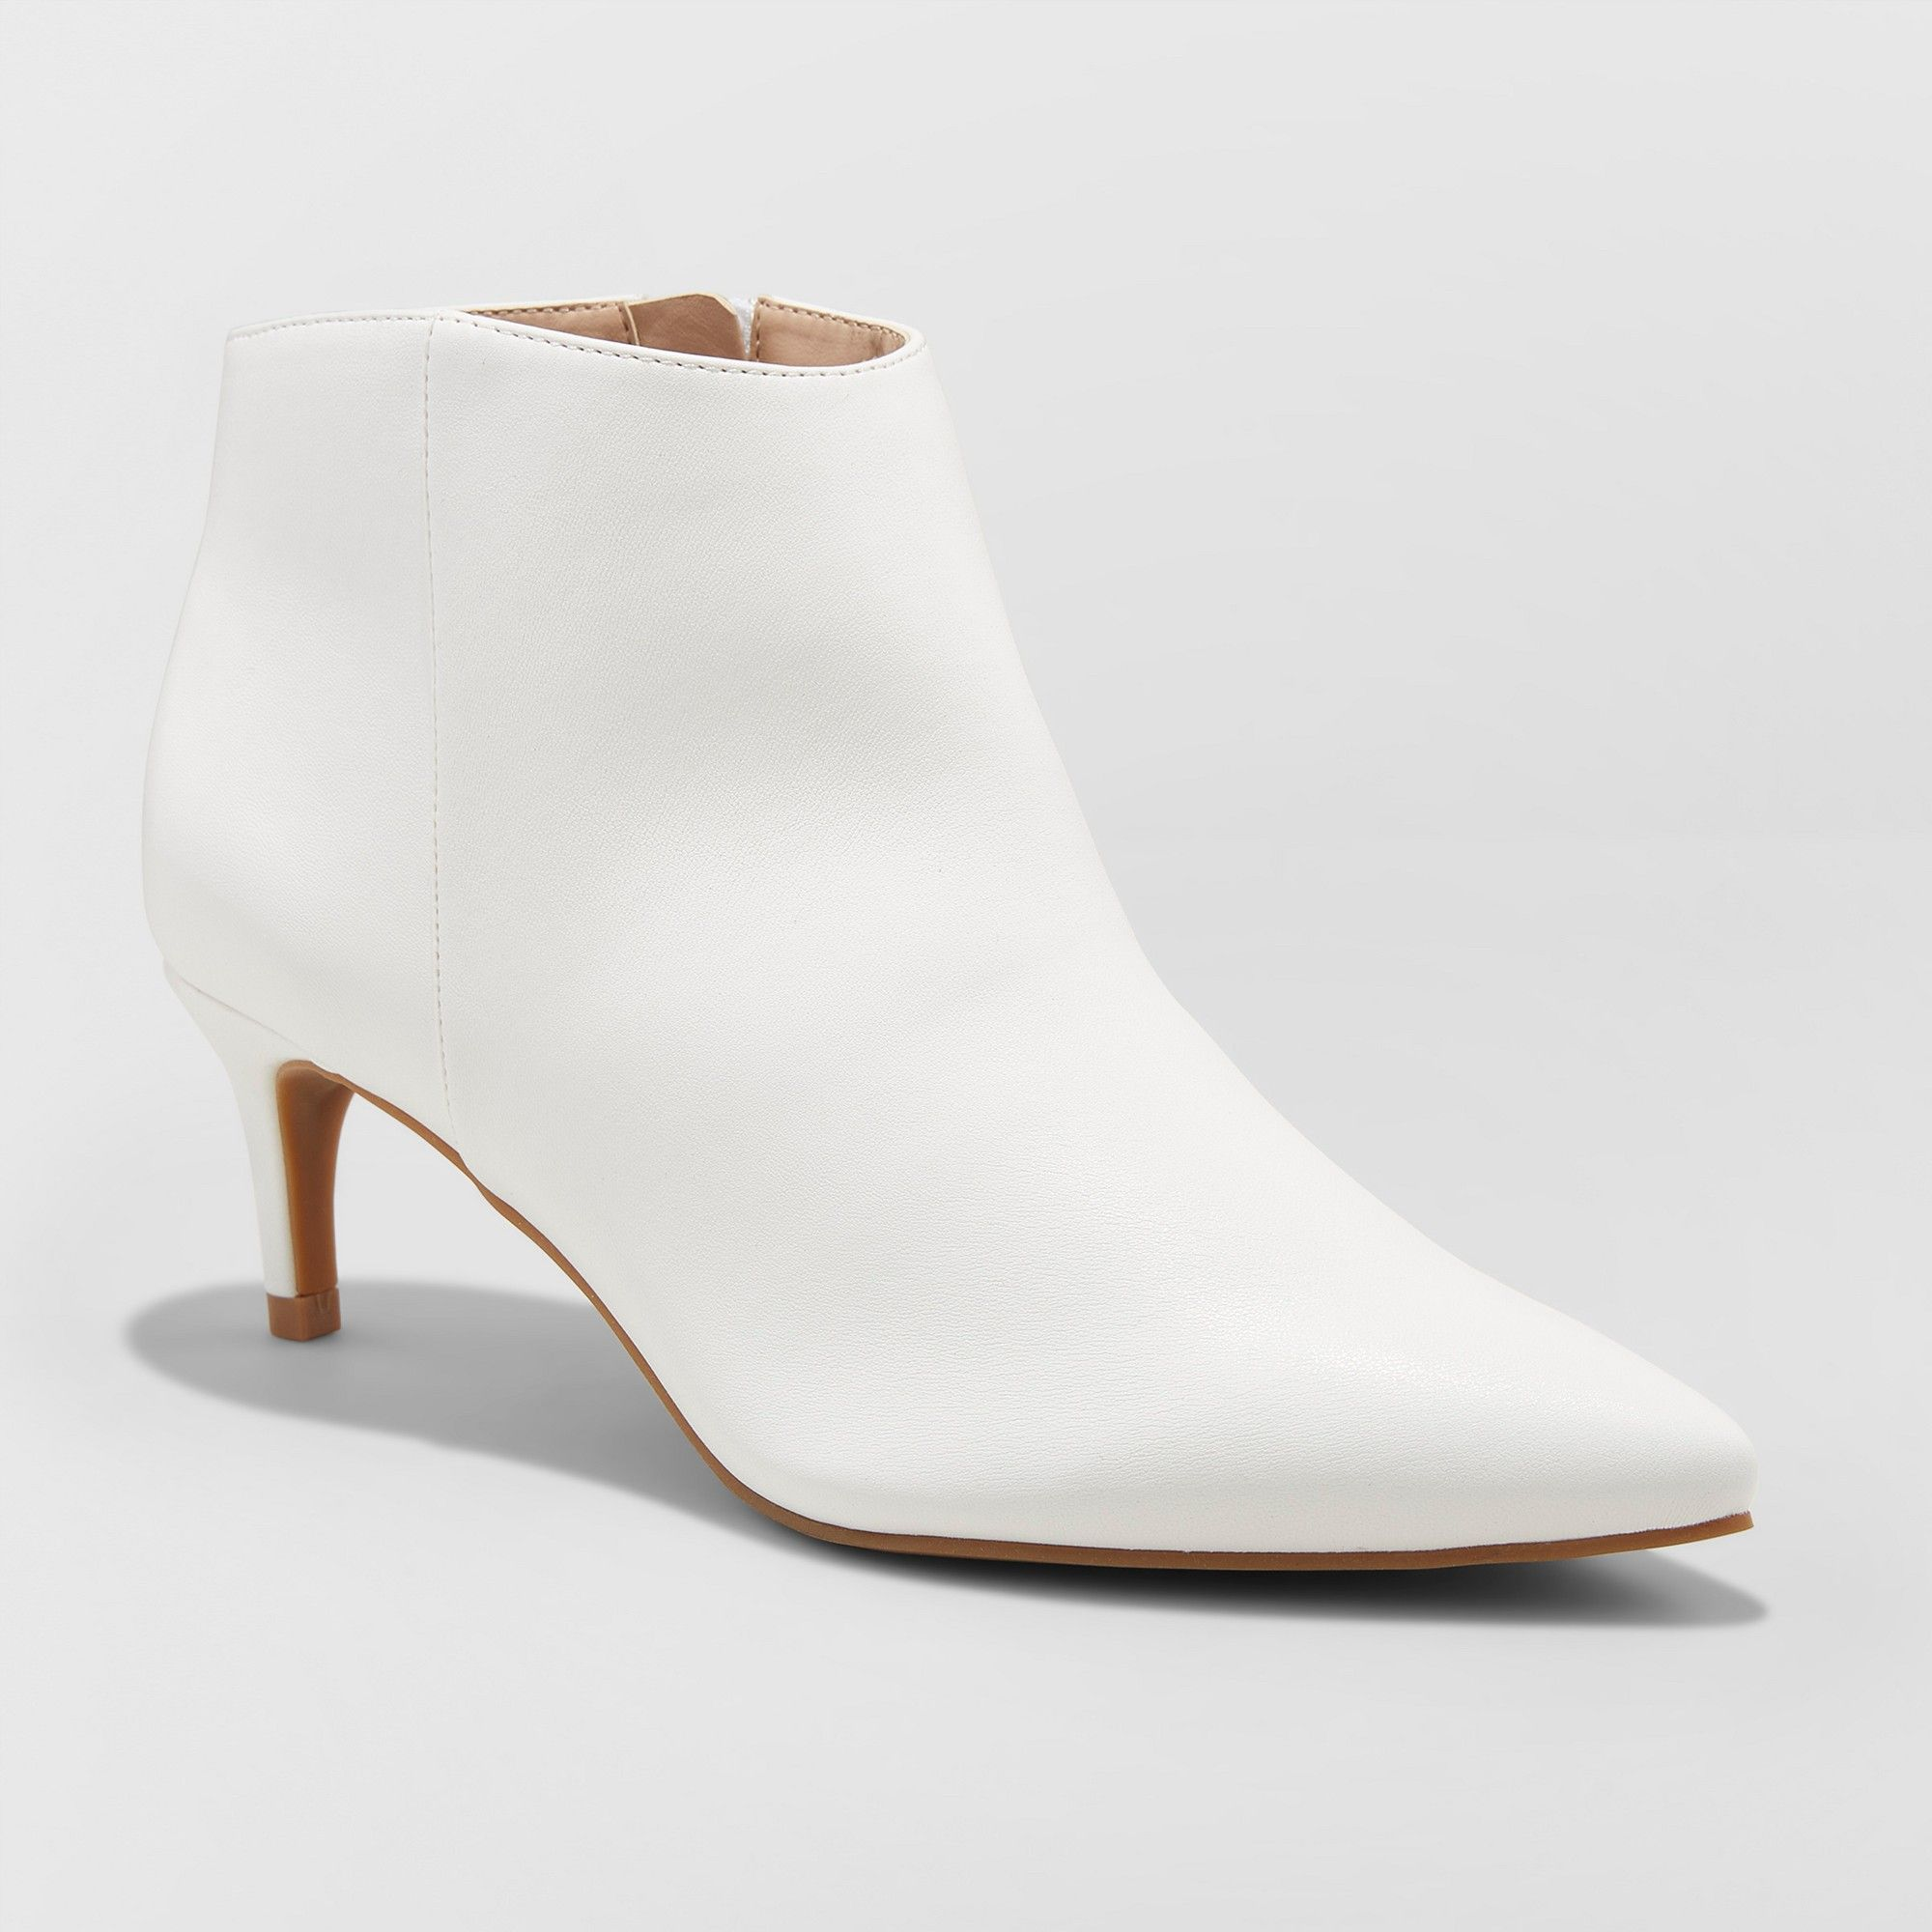 38838344808 Women s Dominique Pointed Kitten Heel Wide Width Booties - A New Day White  7.5W